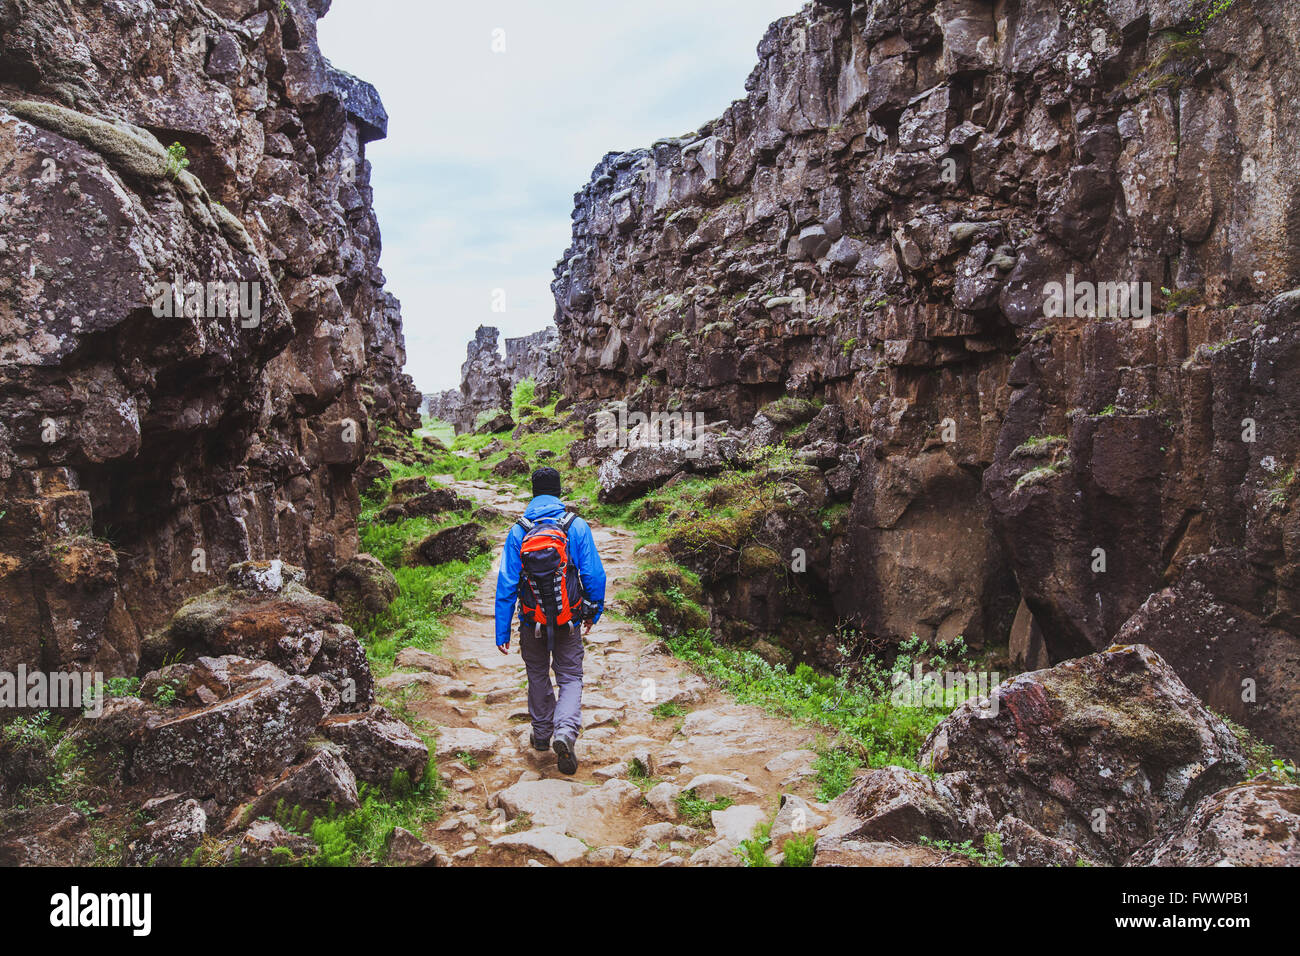 hiking in rocky canyon, backpacker walking in the nature, Iceland - Stock Image